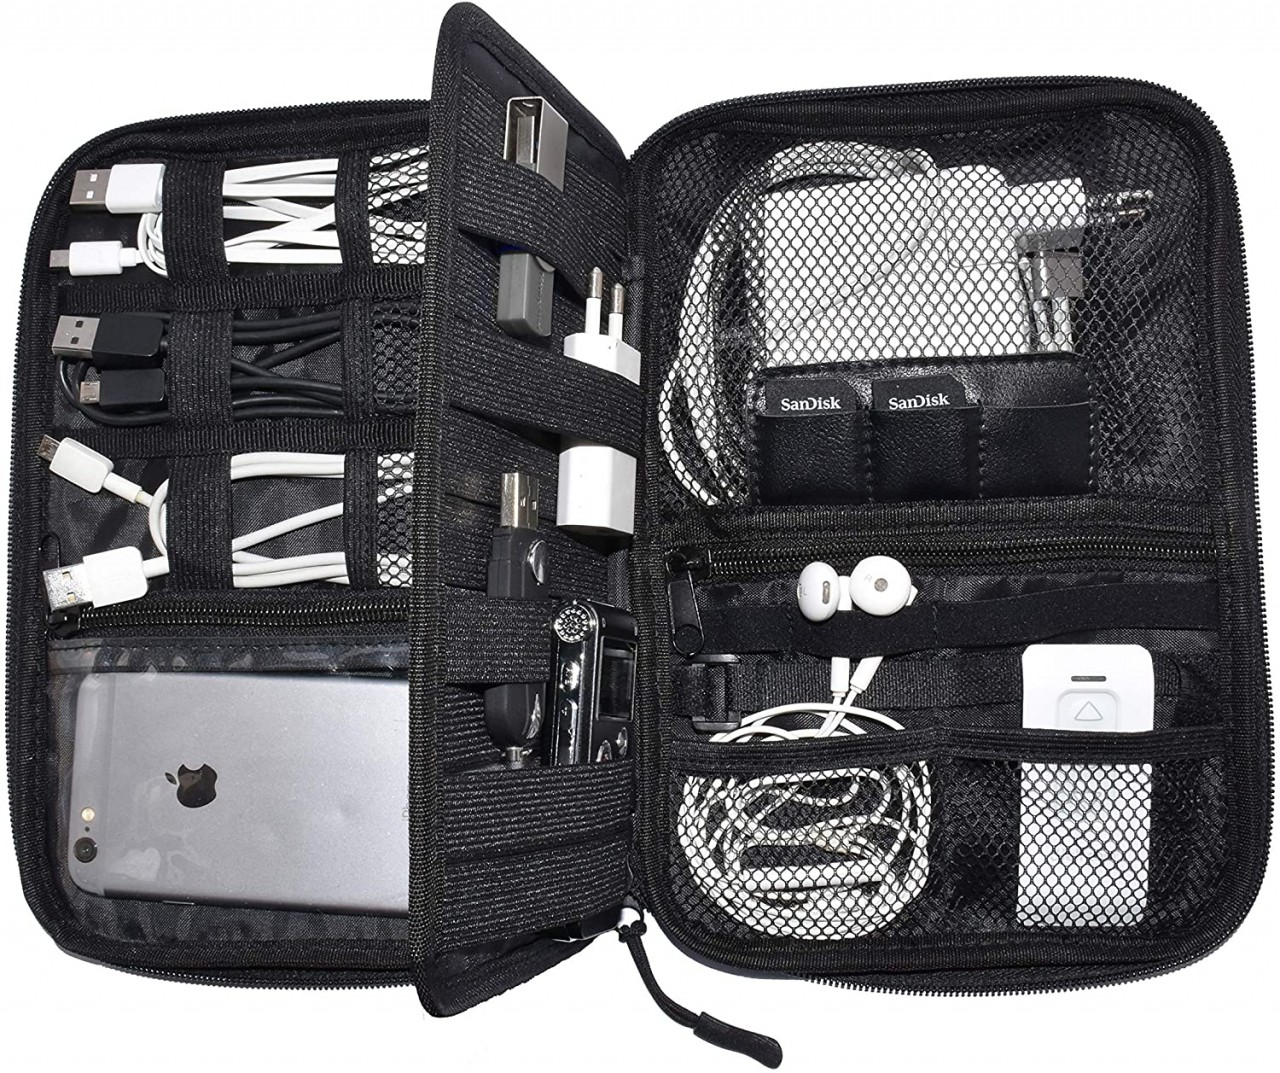 03 travel cord roll